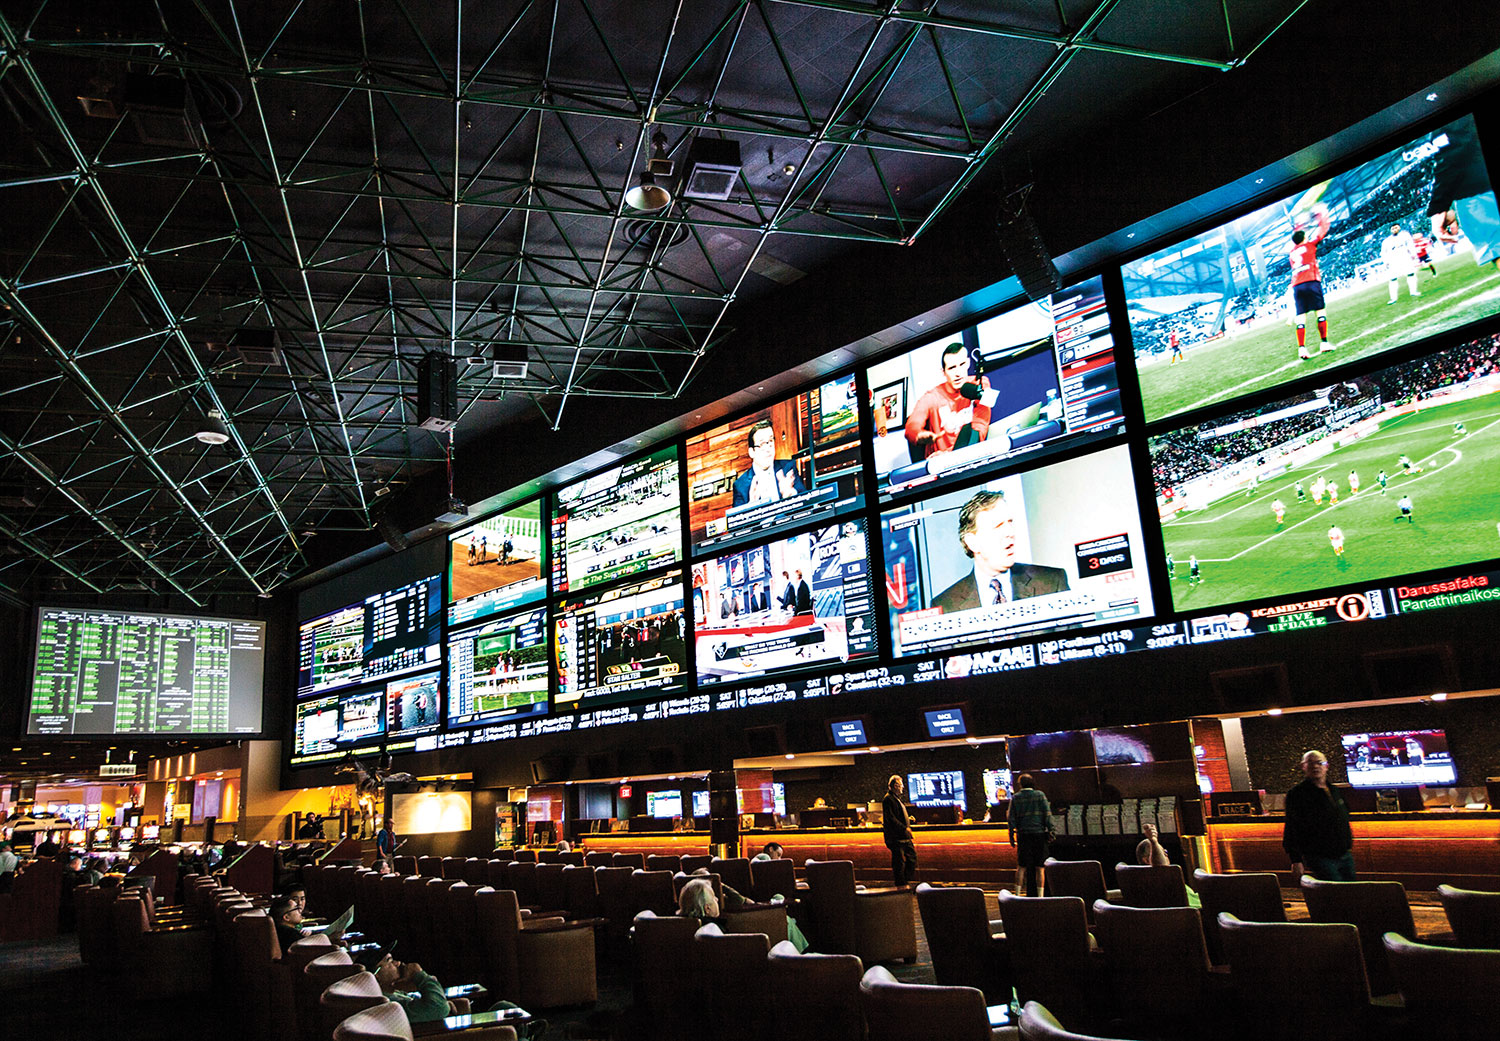 Left side of the videowall and temporary betting stations.